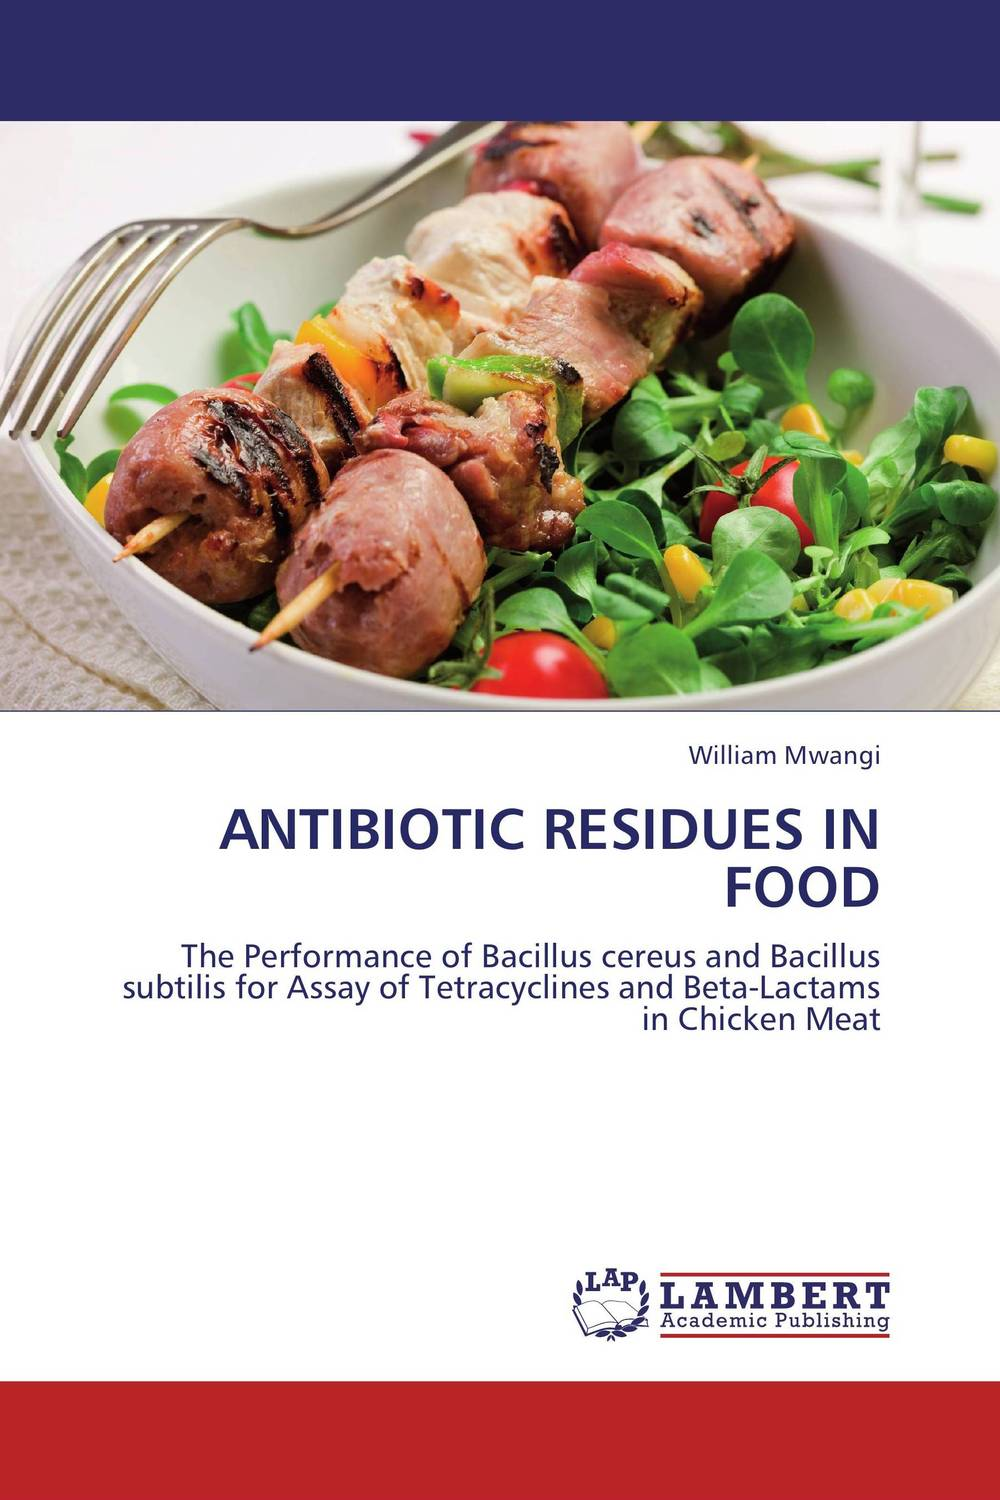 ANTIBIOTIC RESIDUES IN FOOD microbial production of amylase in bacillus cereus sp